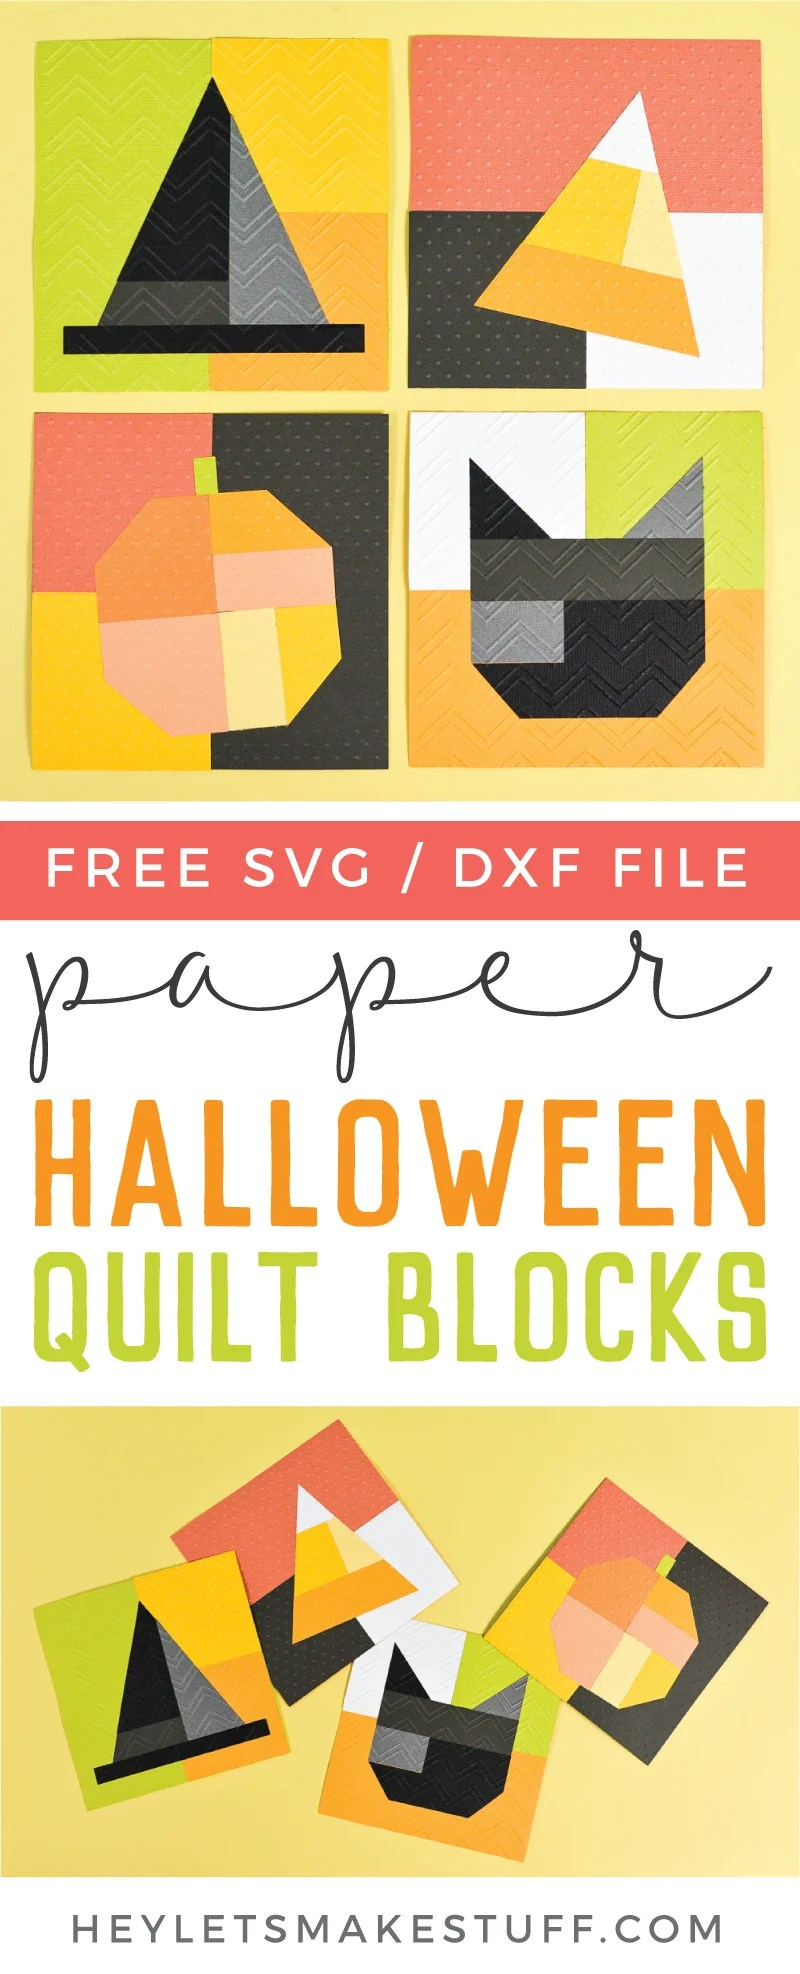 No sewing skills are necessary to make these adorable paper Halloween quilt blocks! Use your Cricut Explore or Maker and Cricut Cuttlebug to make this festive Halloween decor. via @heyletsmakestuf